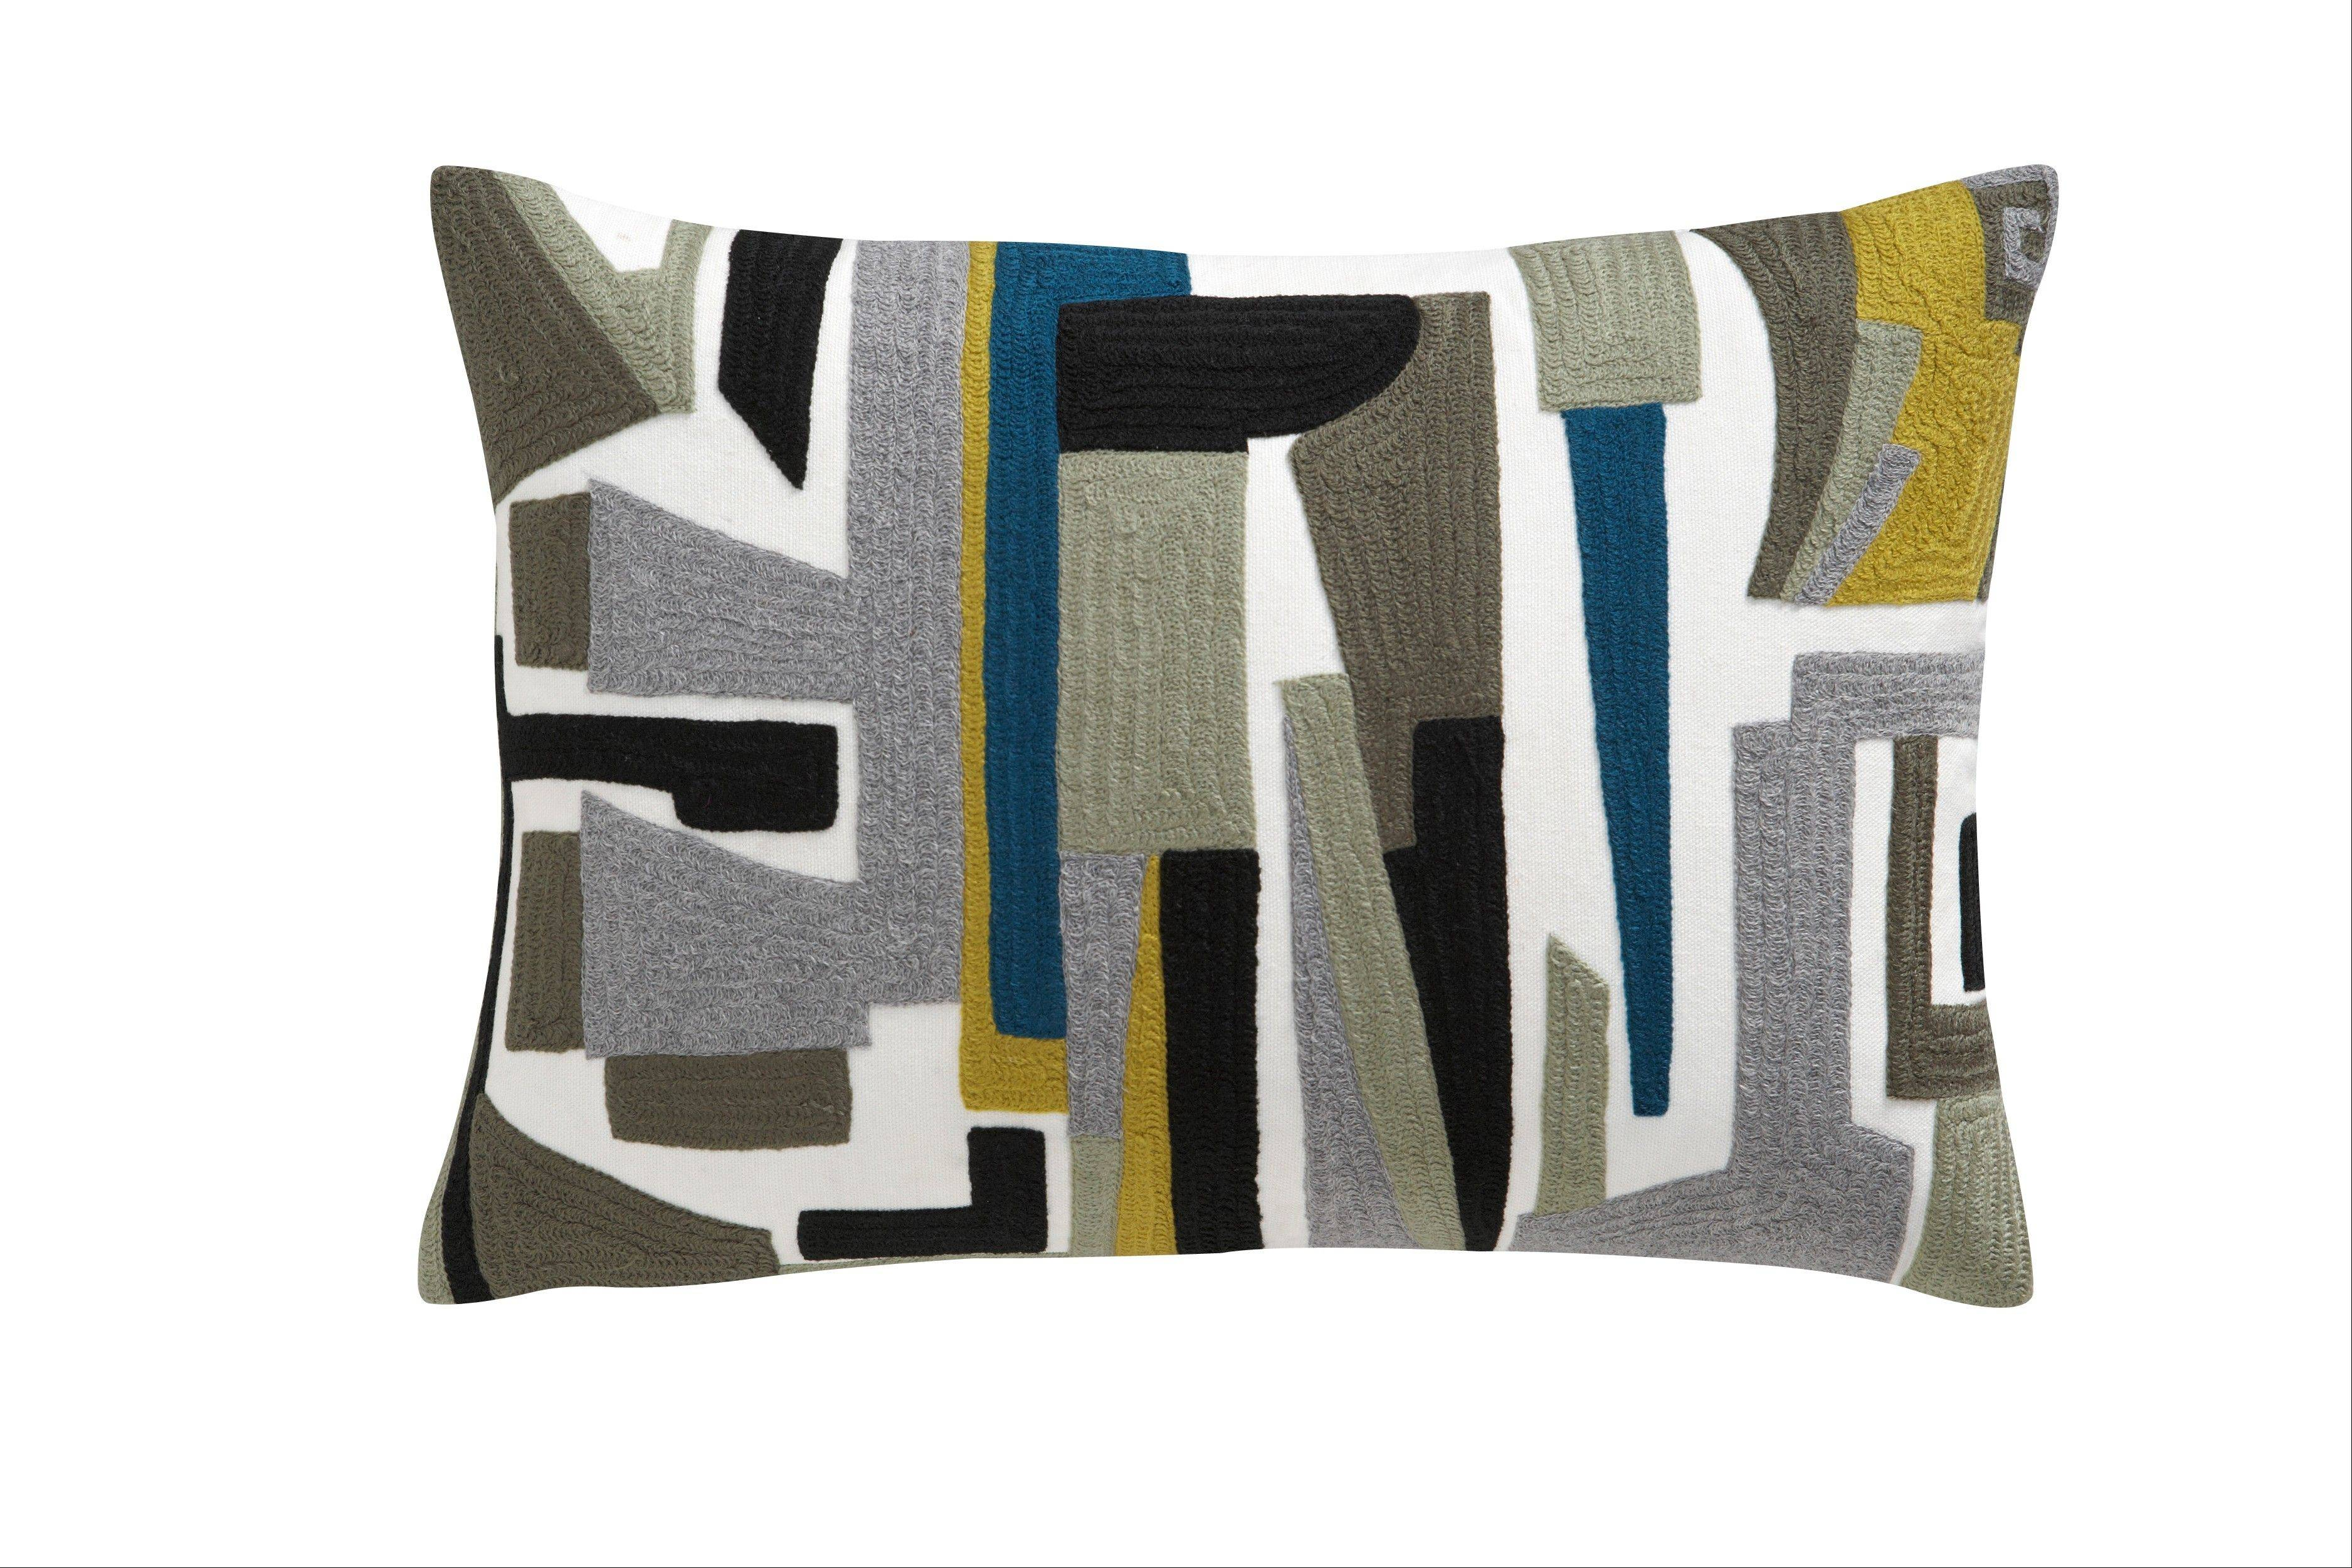 A Shift pillow shows a pop of contemporary pattern and color.